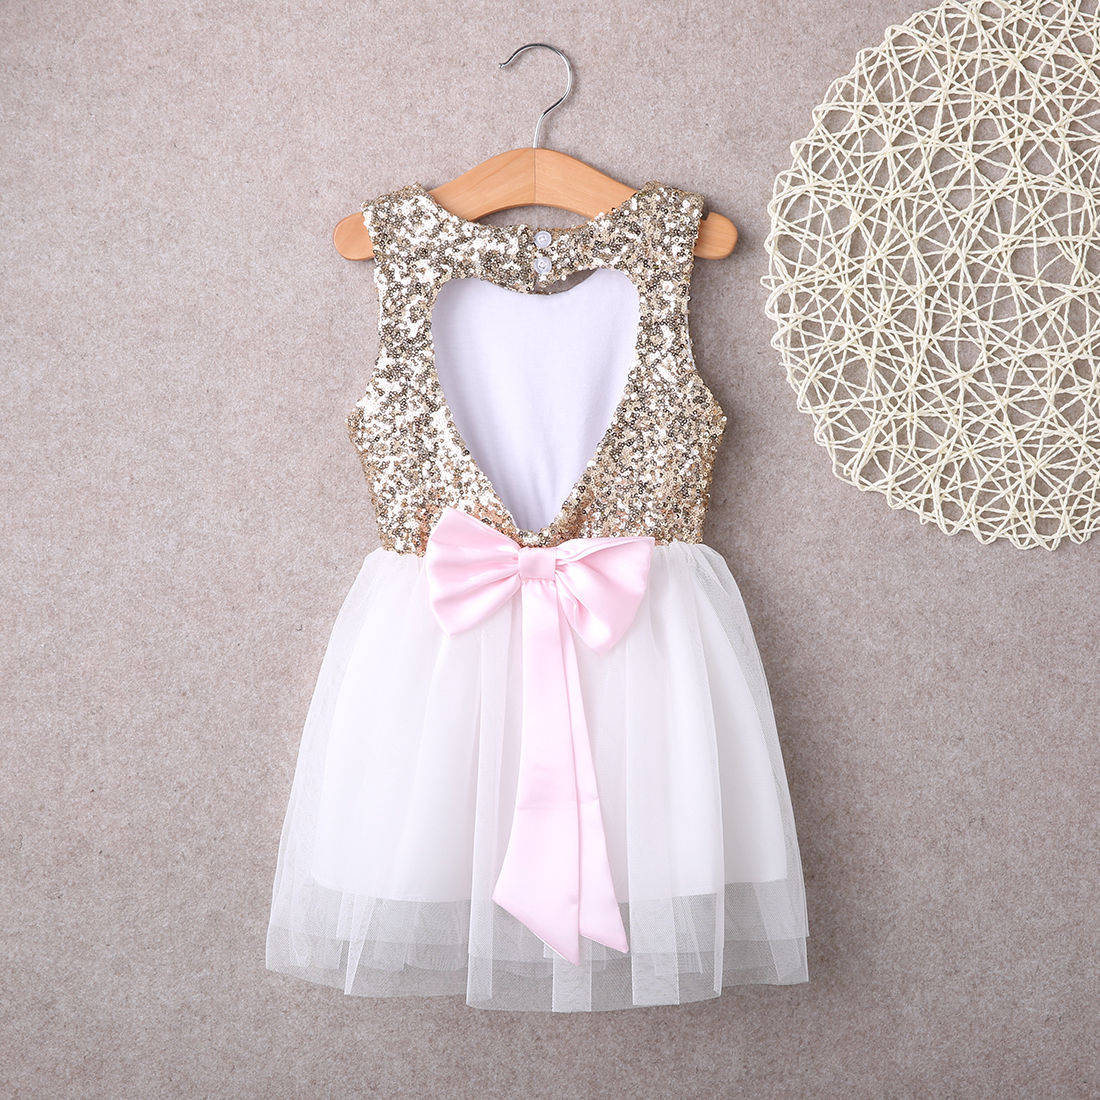 733f2ca14 Sequins Children Baby Girls Dresses Clothing Party Gown Mini Ball Formal  Love Pattrern Backless Bow Party